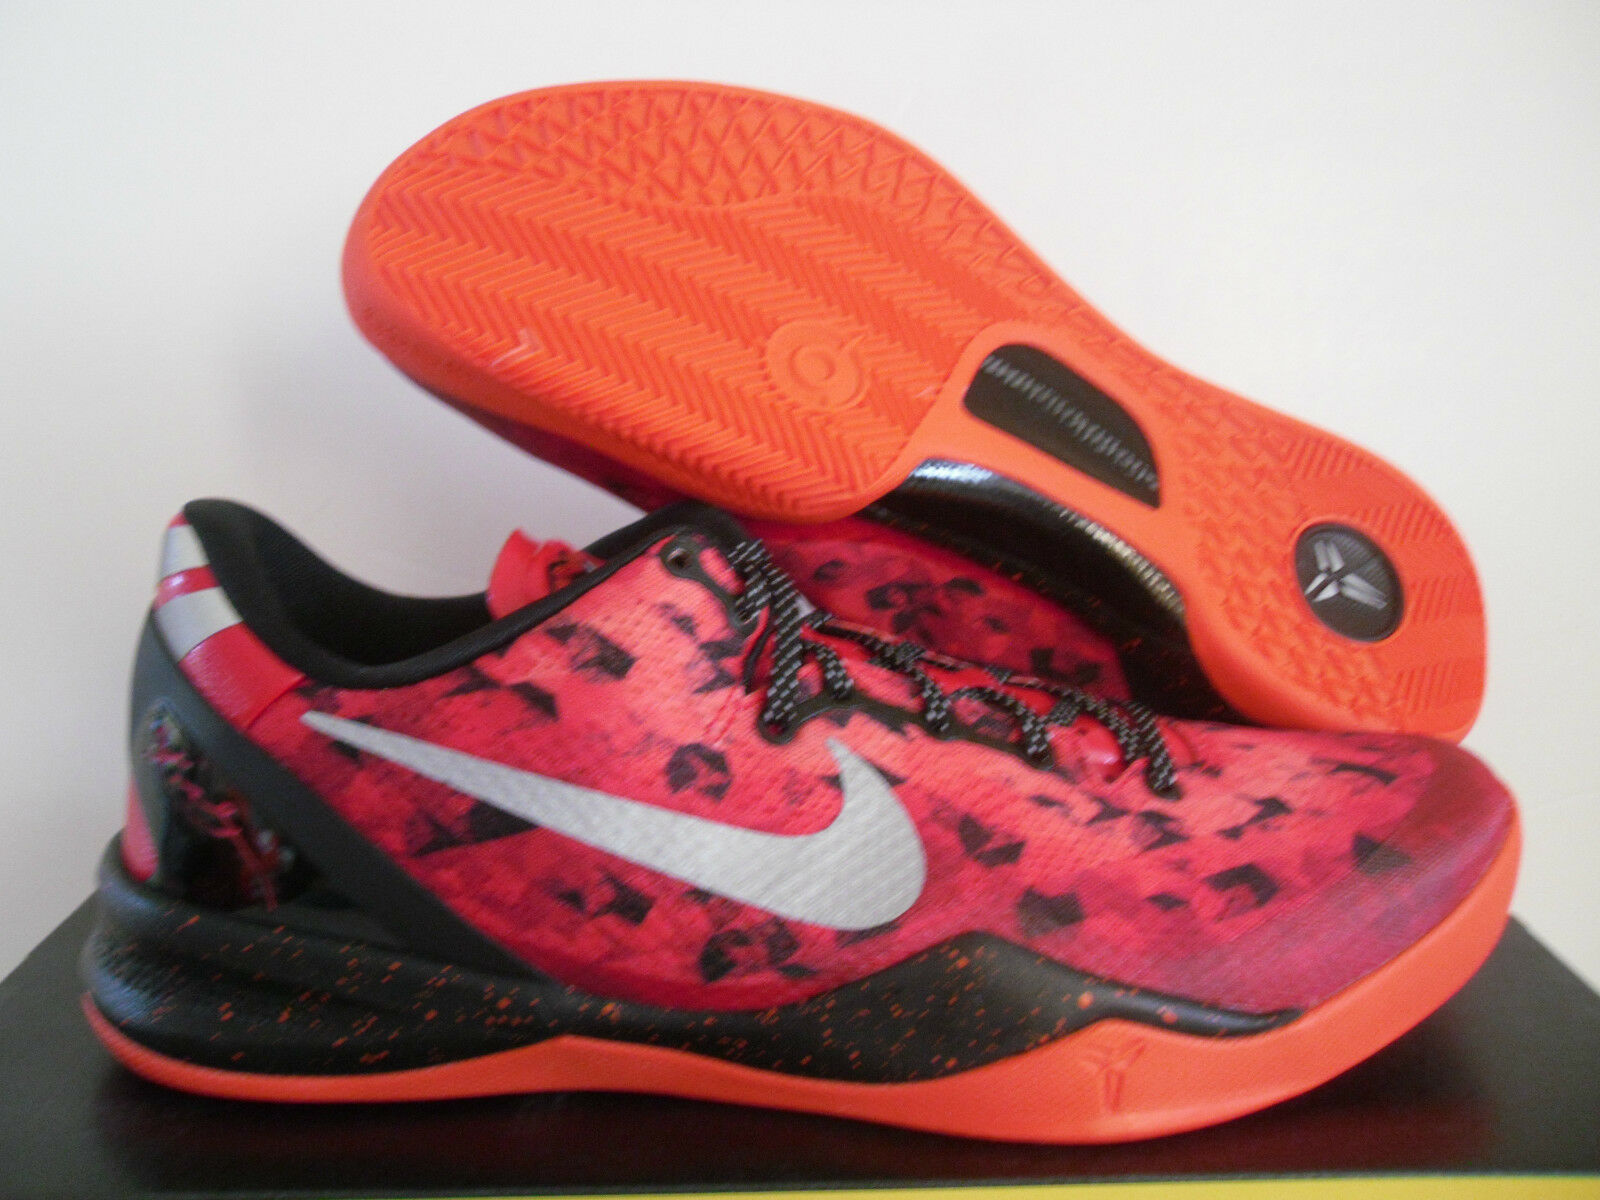 NIKE KOBE 8 VIII SYSTEM CHALLENGE RED-TEAM ORANGE SZ 13.5  [555035-600]